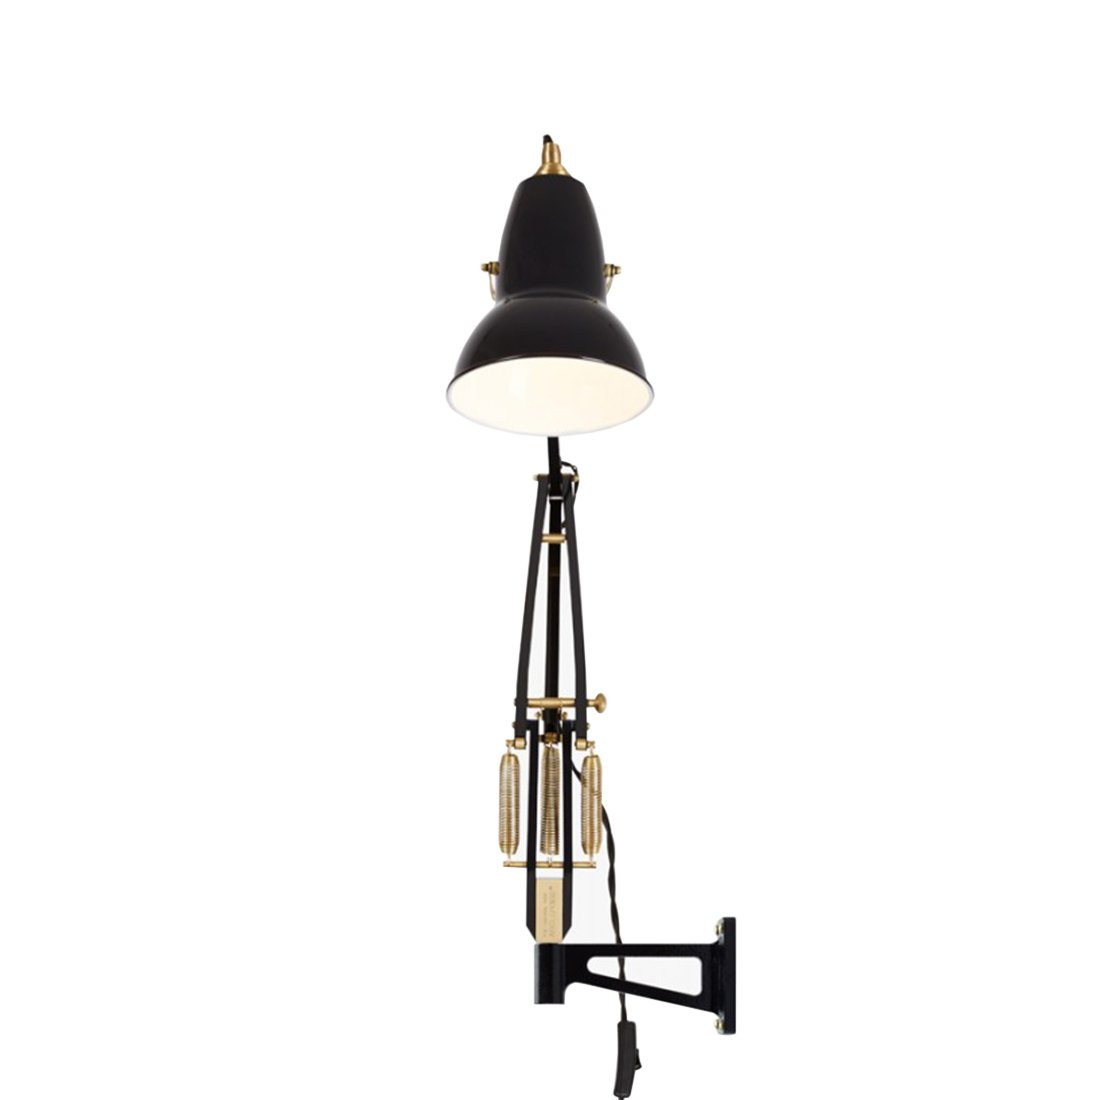 Anglepoise Original 1227 Brass Wall Mounted Wandlamp - Jet Black